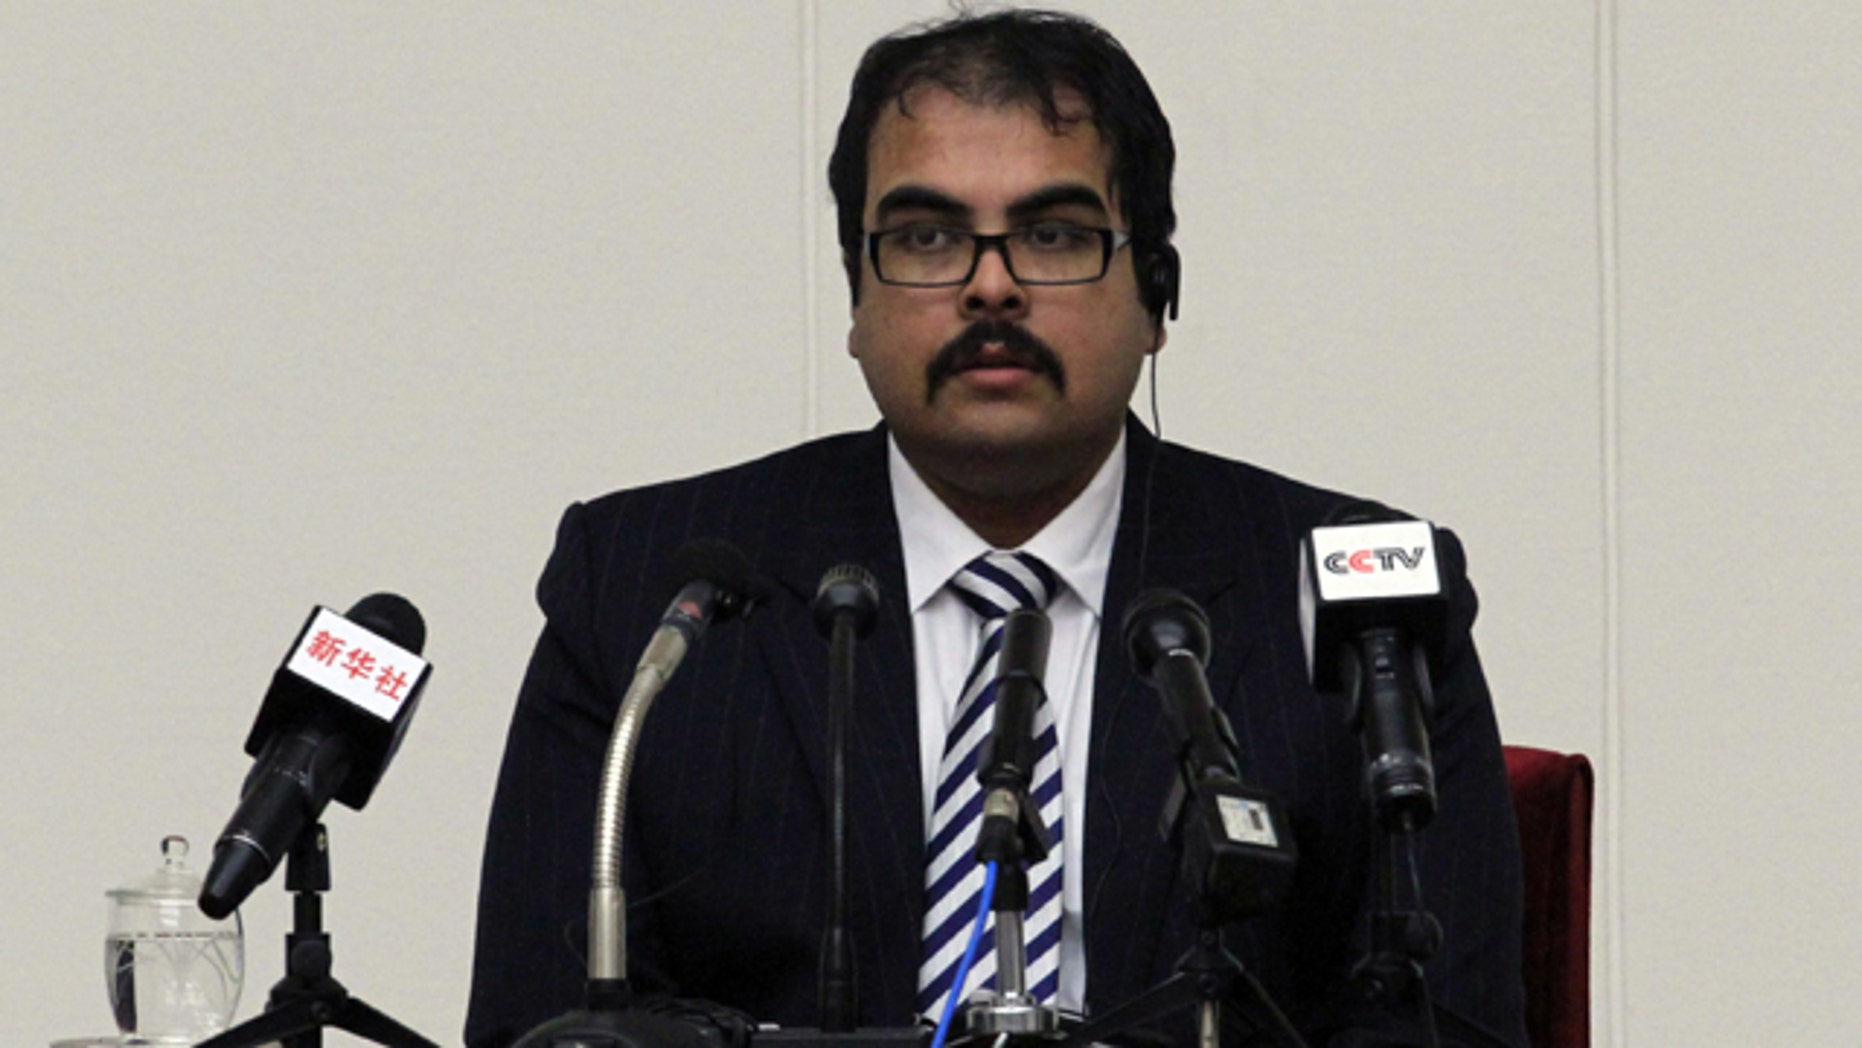 Dec. 14, 2014: Arturo Pierre Martinez, 29, speaks at a press conference at the Peoples Palace of Culture in Pyongyang, North Korea. North Korea on Sunday presented to the media the American, who says he illegally crossed into the country but has not been held in custody and is seeking asylum in Venezuela. (AP Photo/Kim Kwang Hyon)